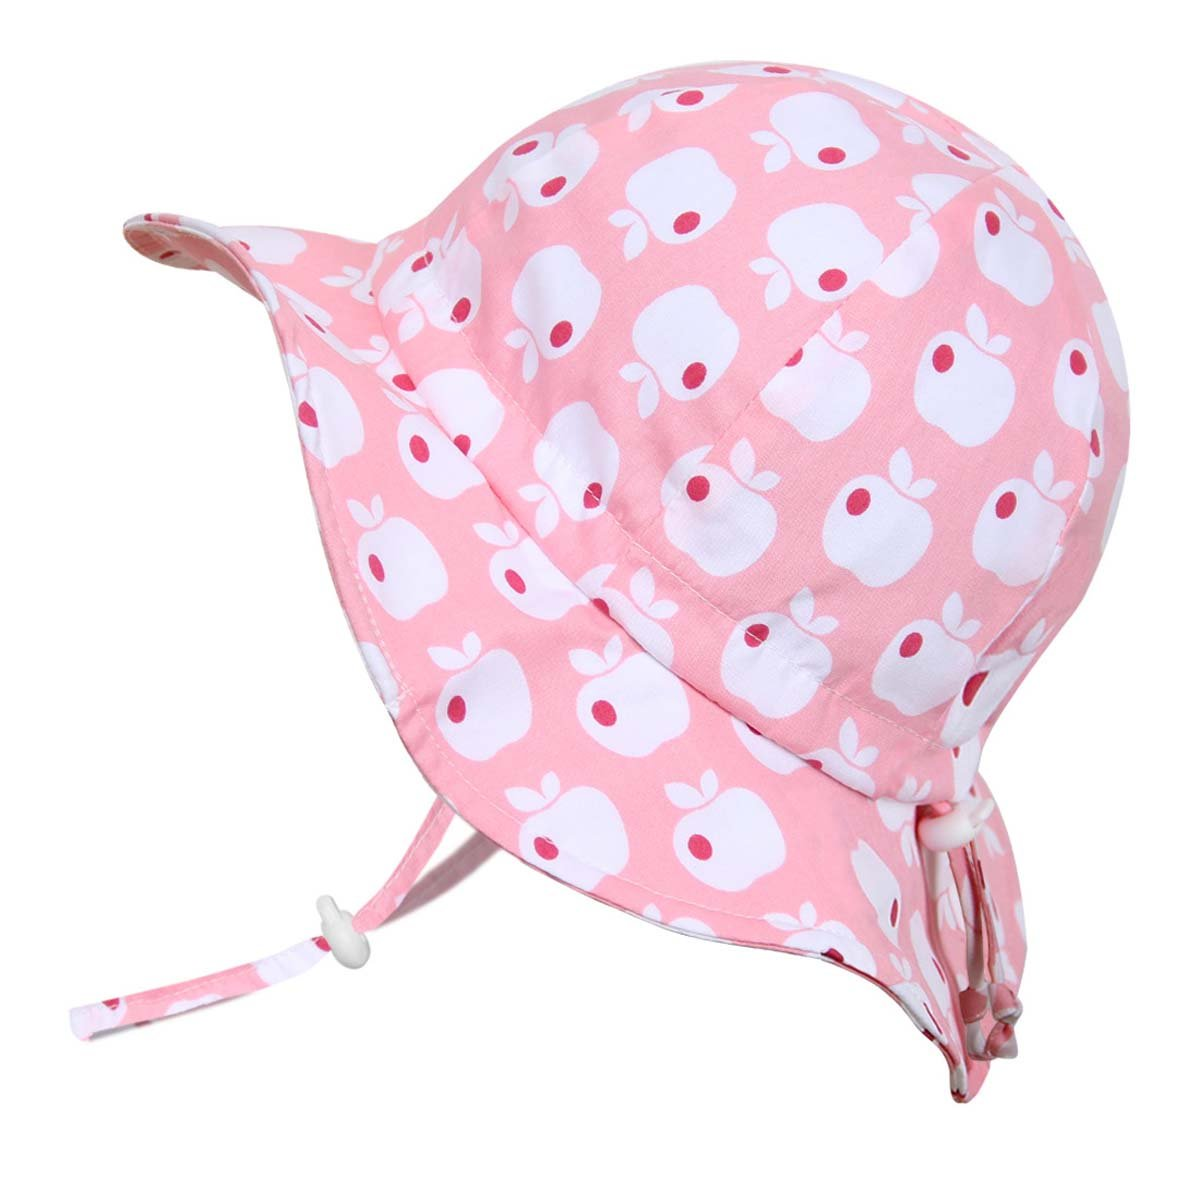 Twinklebelle Children's Cotton Sun Protective Hats 50 UPF, Adjustable, Stay-On, Packable (L: 2-12Y, Floppy Hat: Pink Apple)